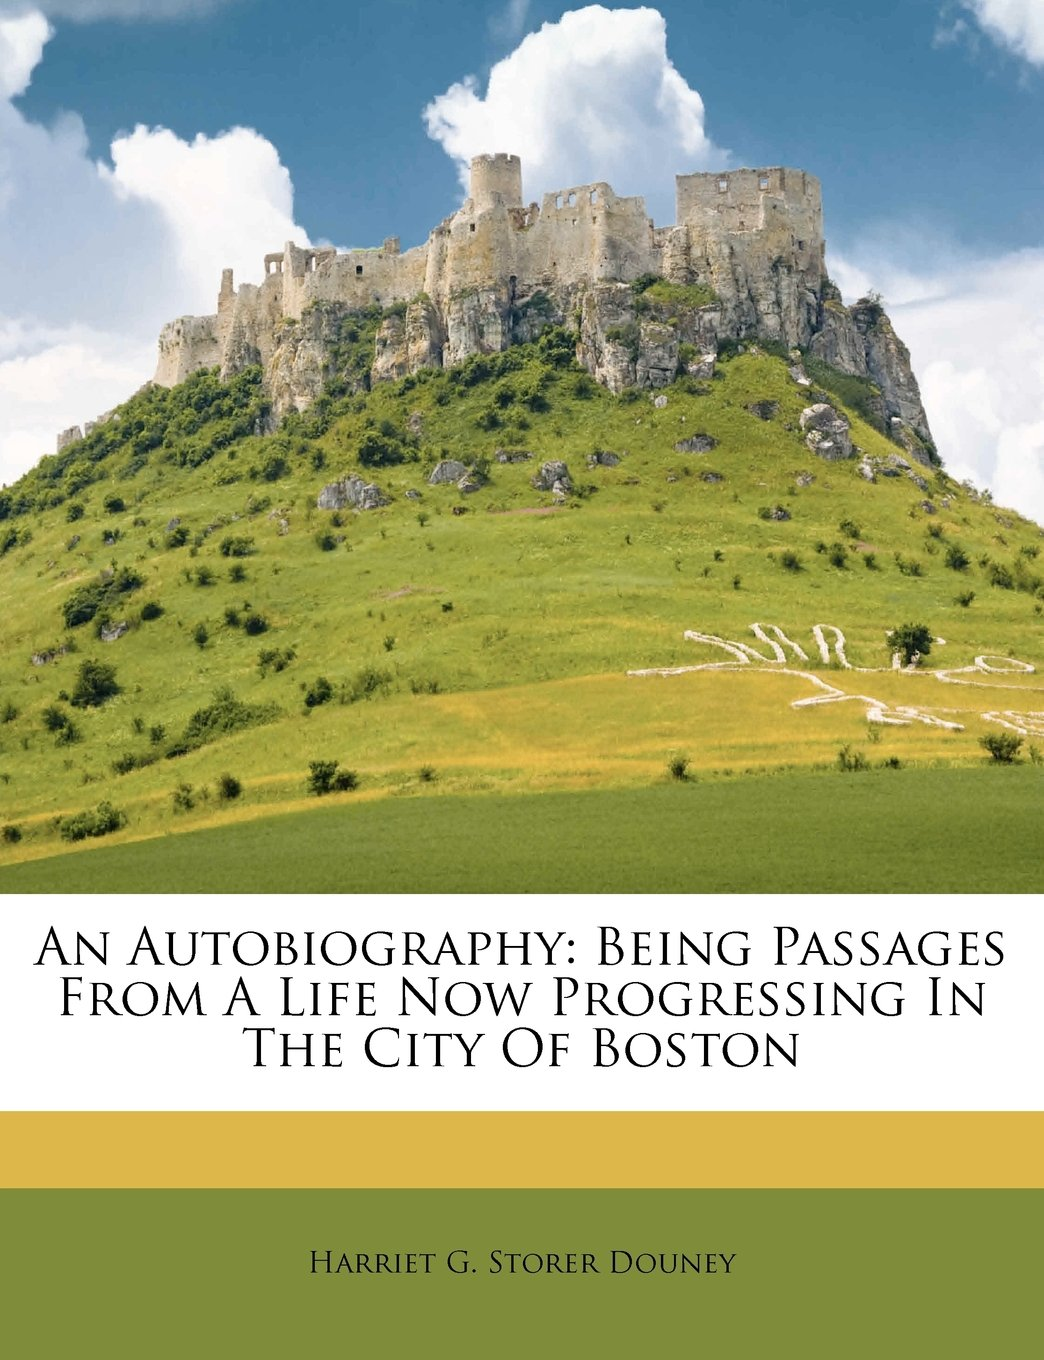 An Autobiography: Being Passages From A Life Now Progressing In The City Of Boston PDF